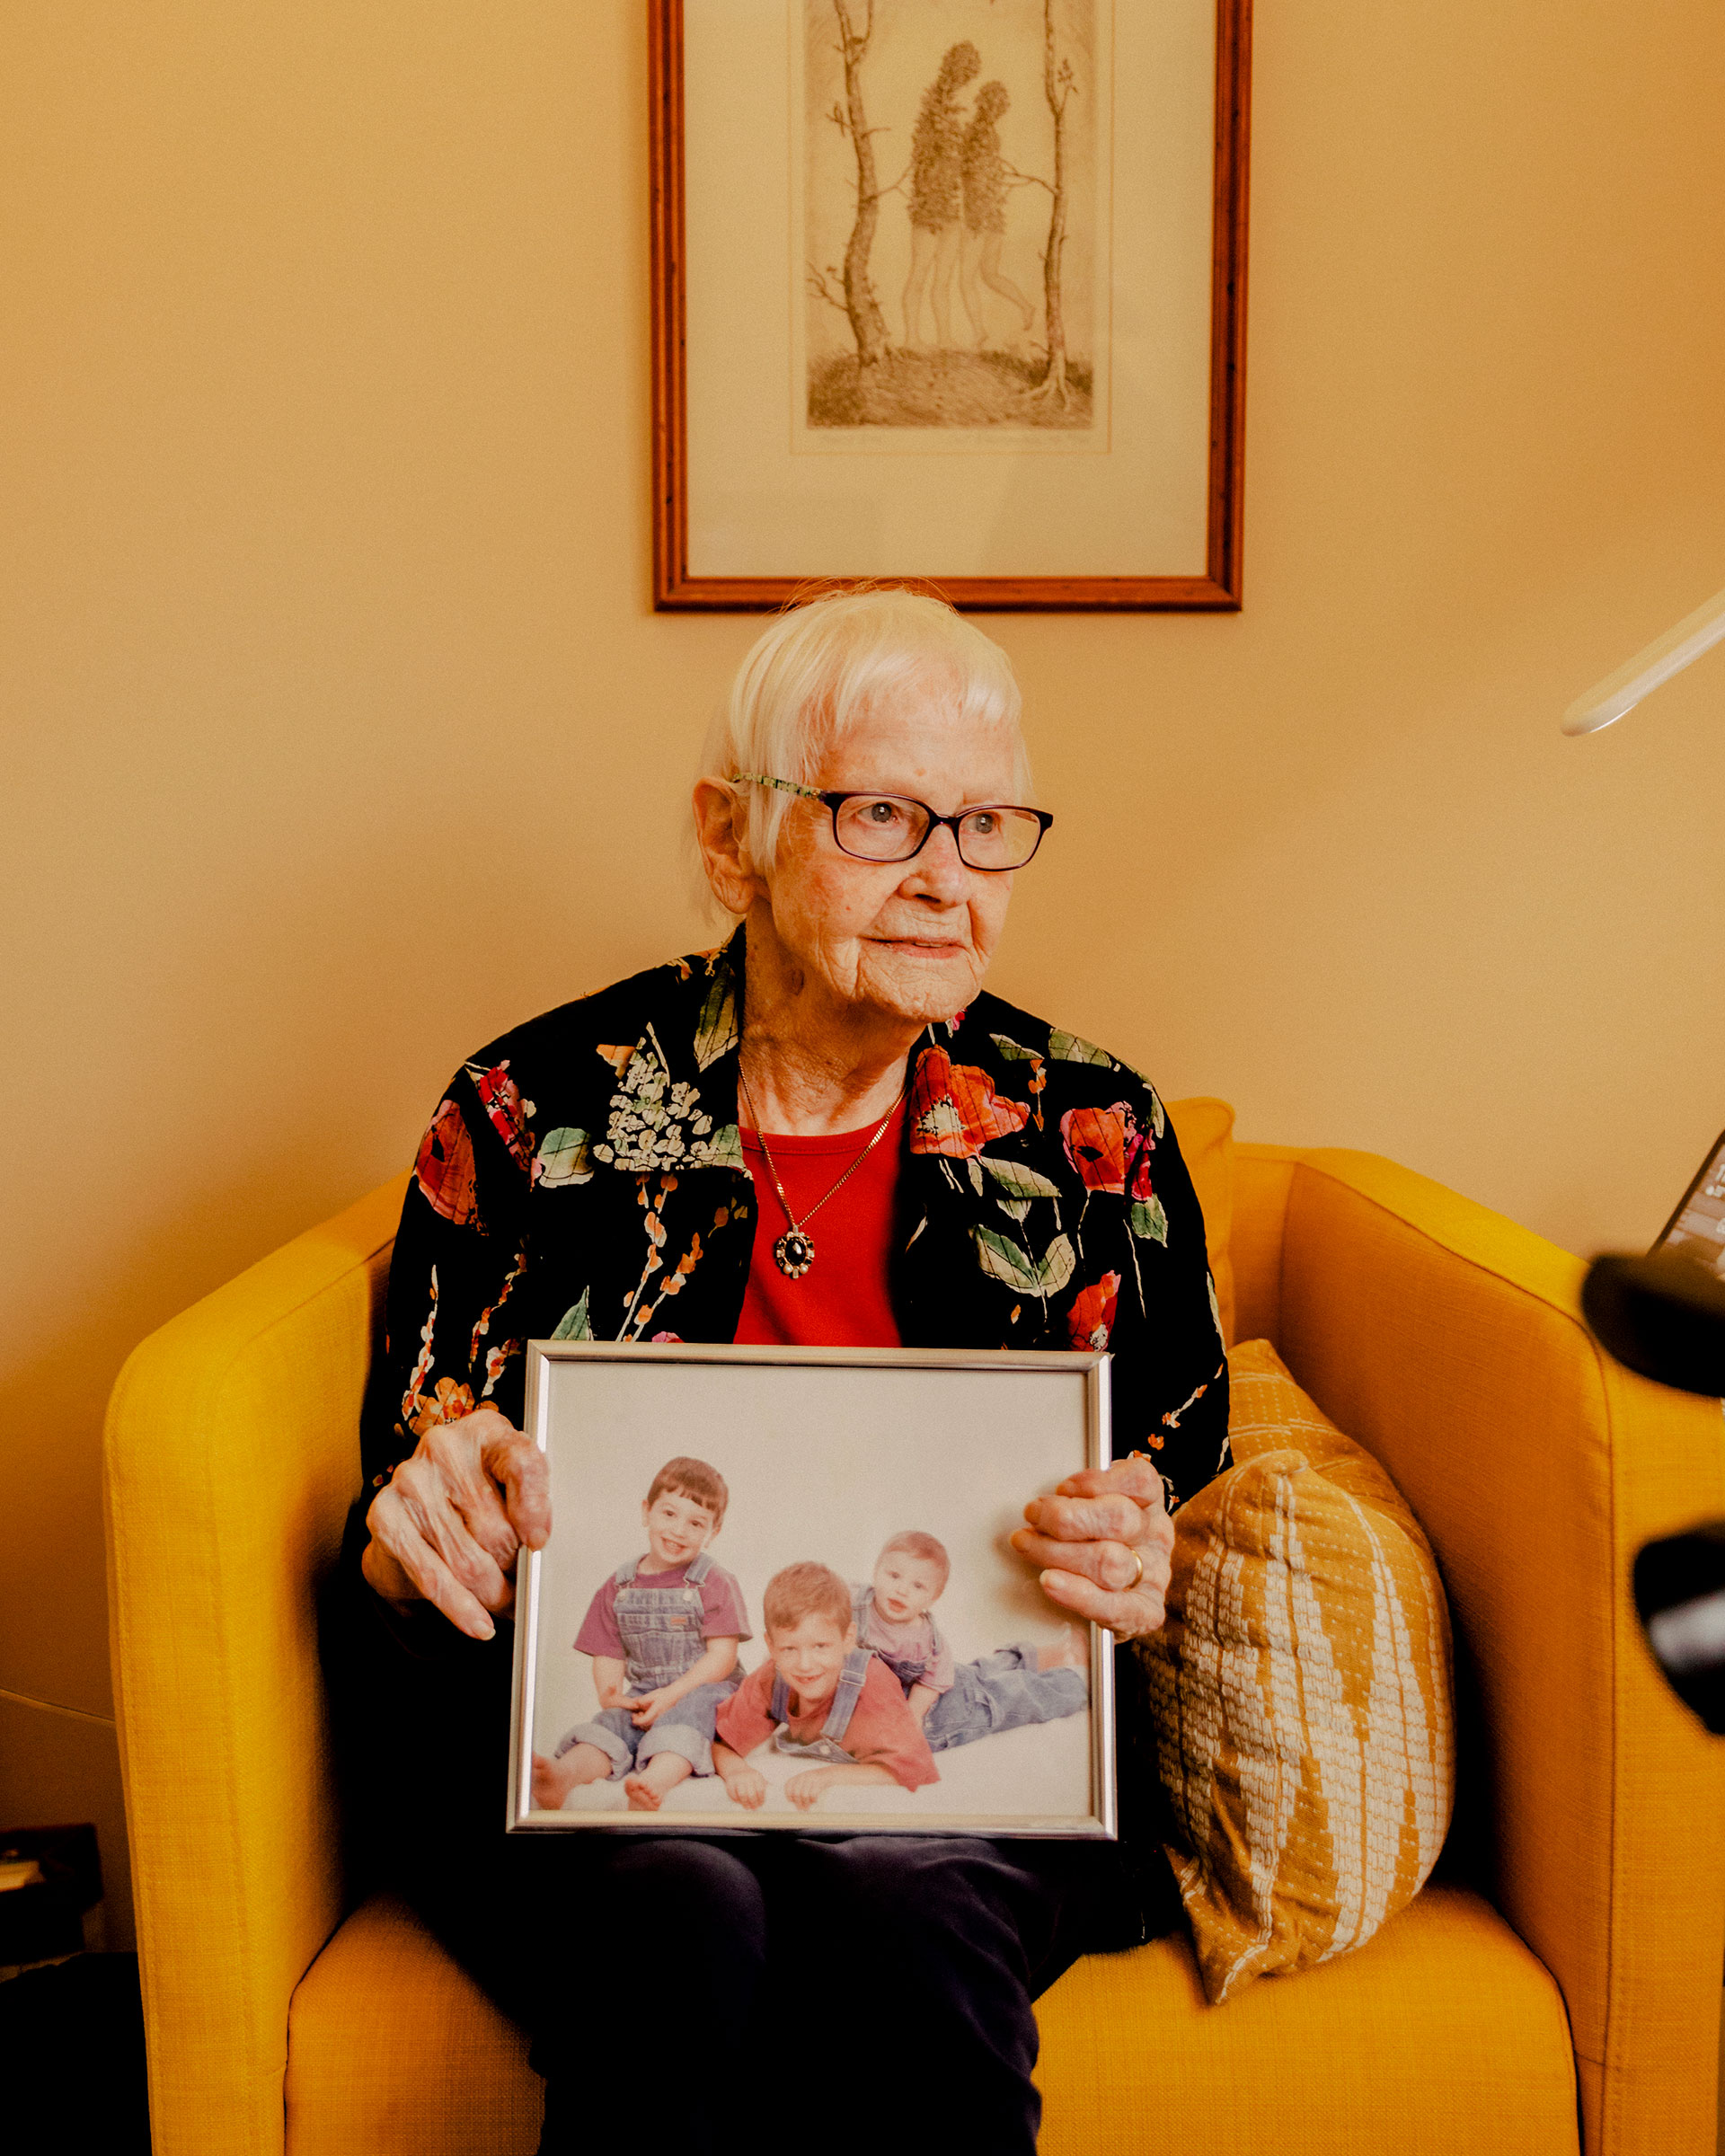 Ronnel, 92, hopes the vaccine will allow her to embrace her children and grandchildren, whom she hasn't seen in person since the fall